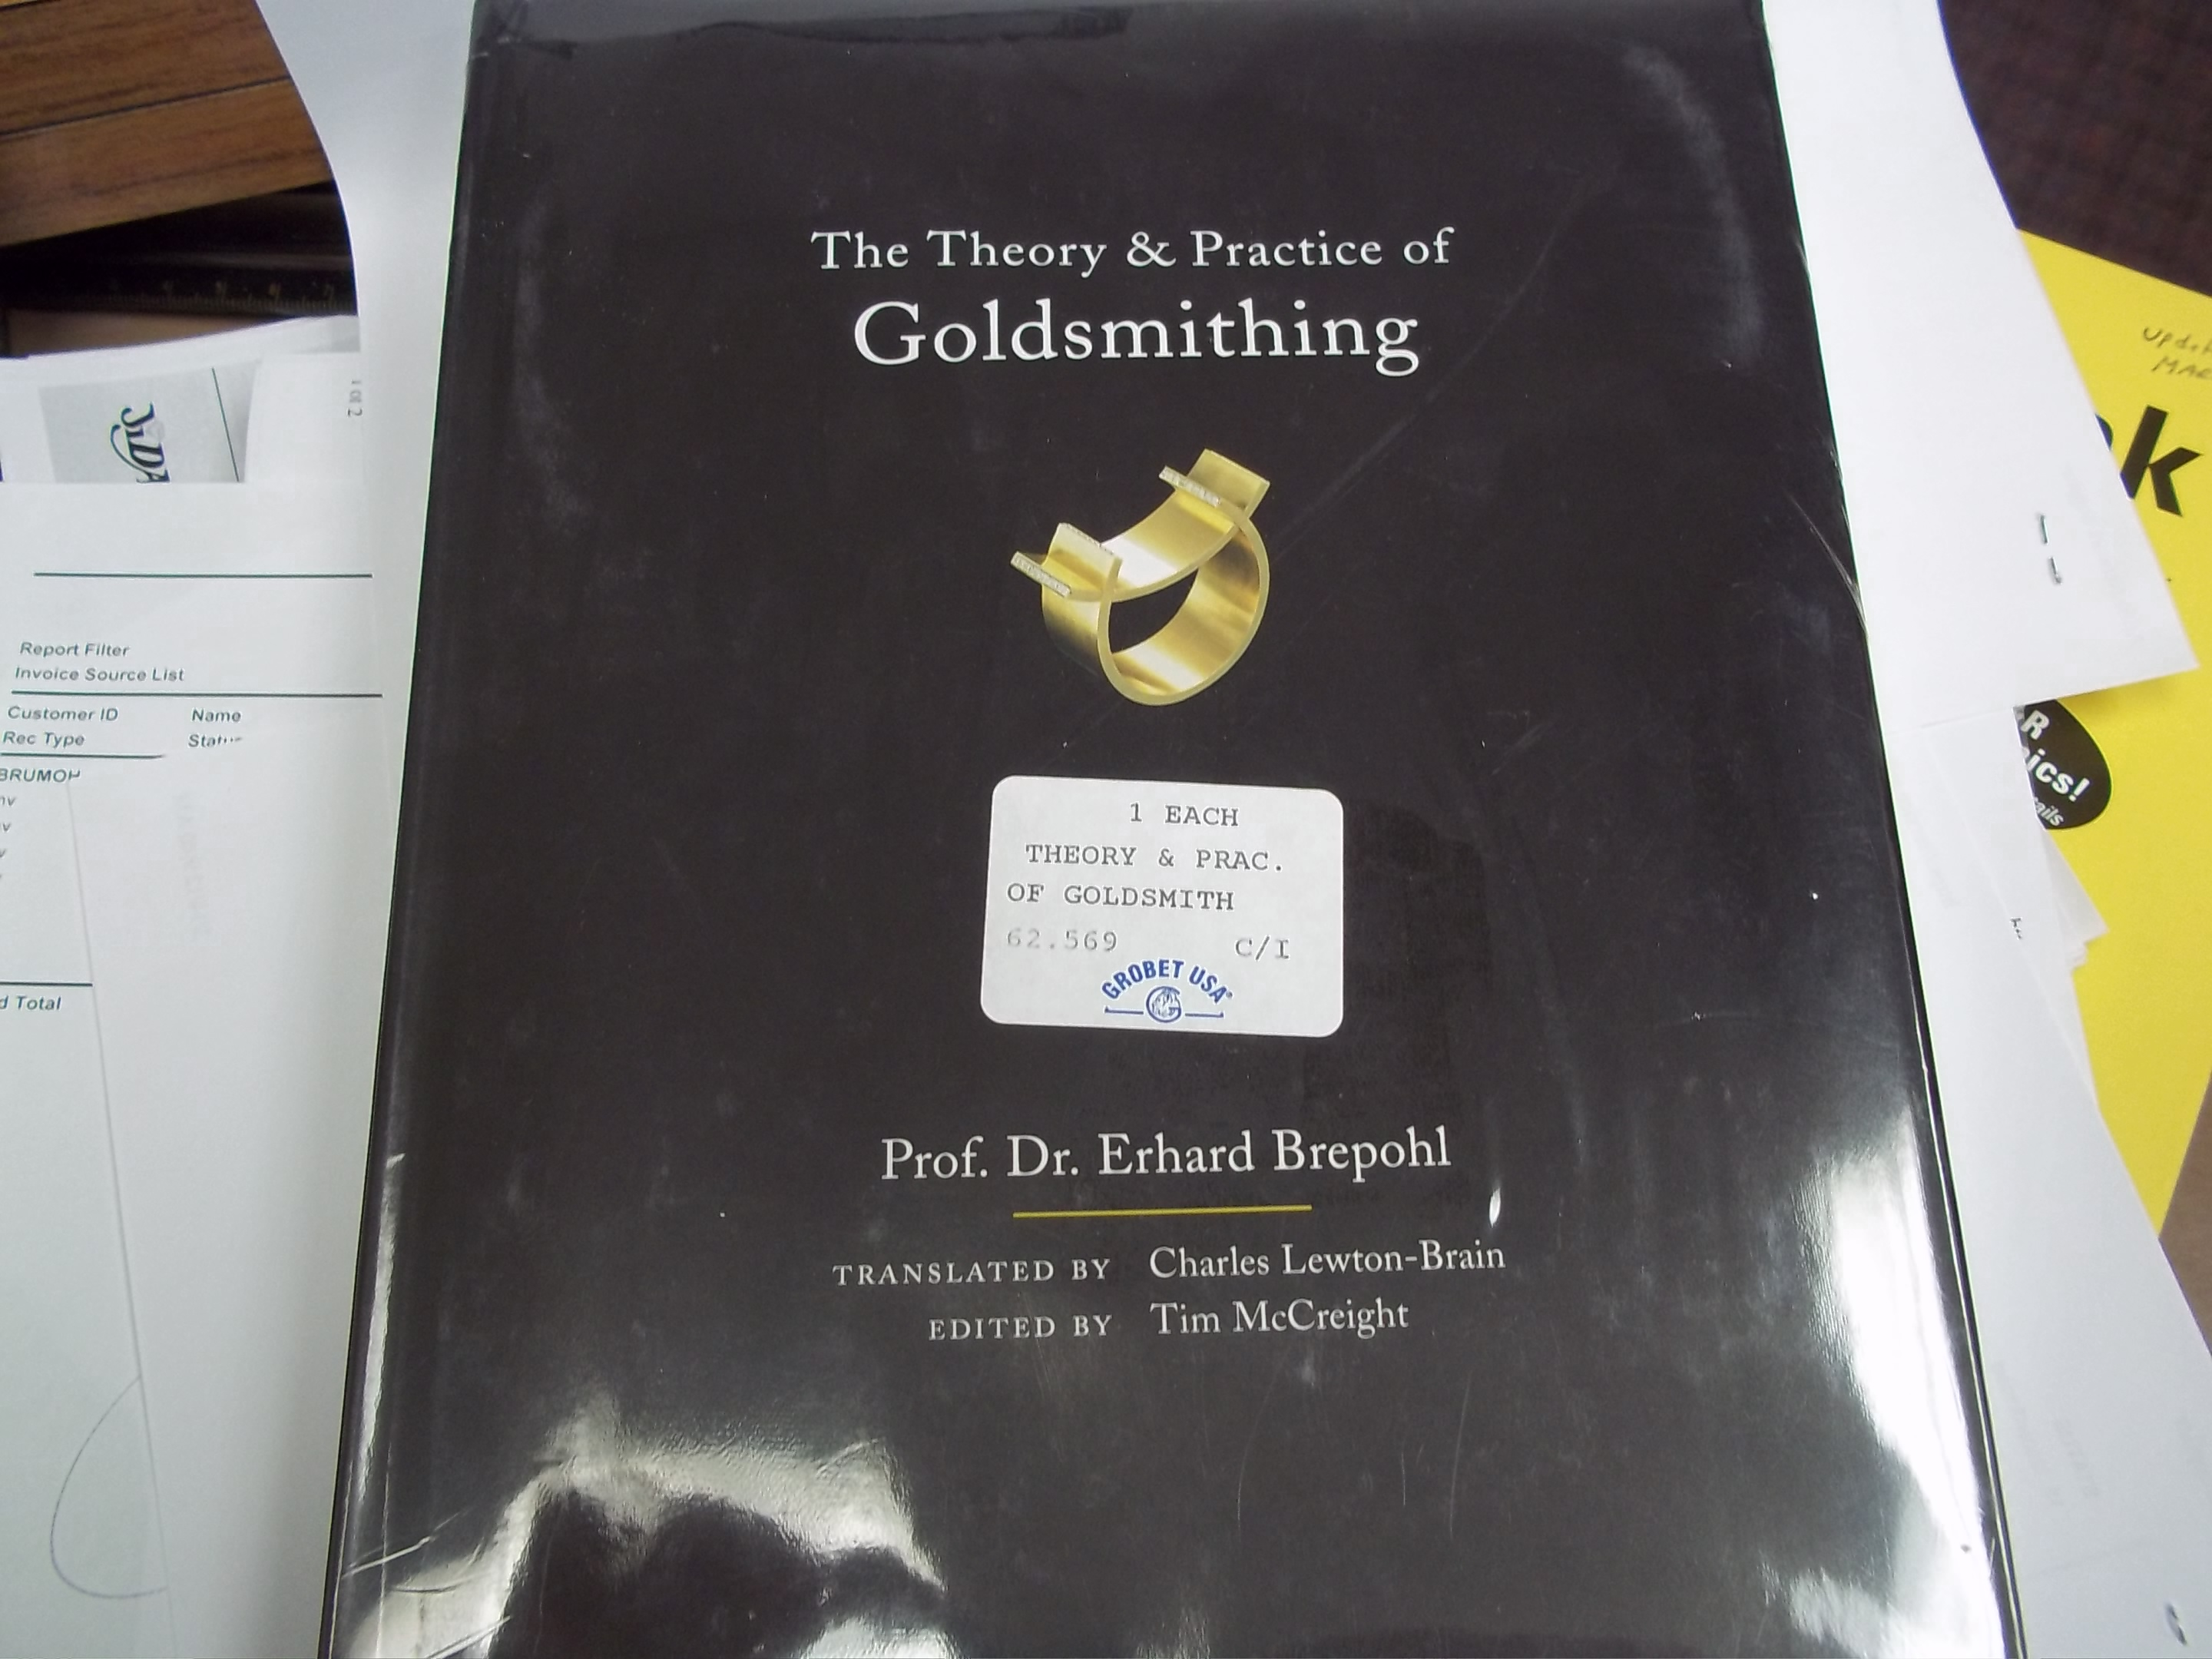 62.569 Book: The Theory & Practice of Goldsmithing, by Prof. Dr. Erhard Brepohl